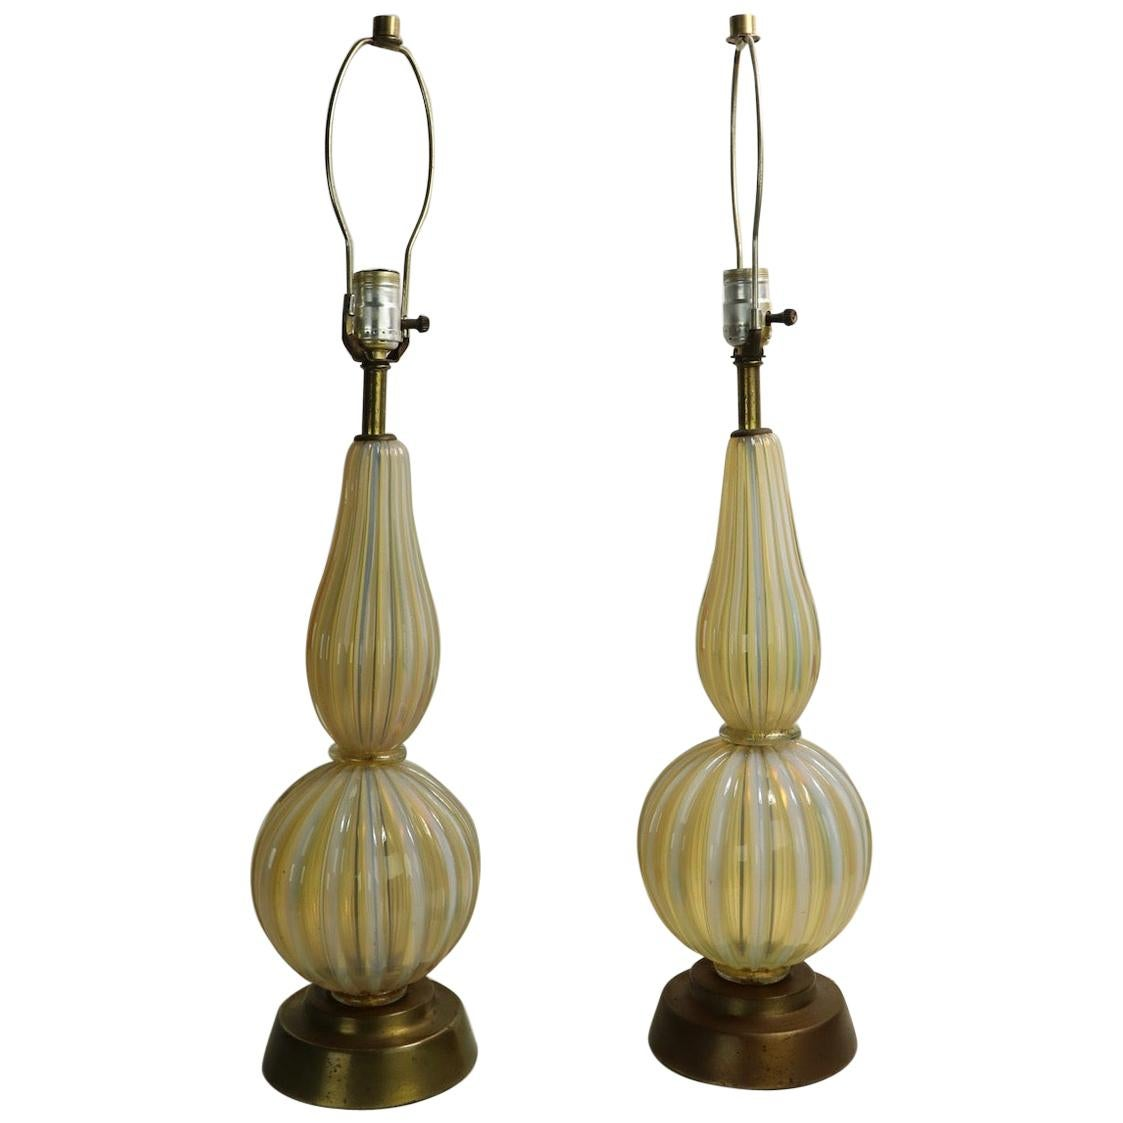 Pair of Murano Table Lamps Attributed to Barovier